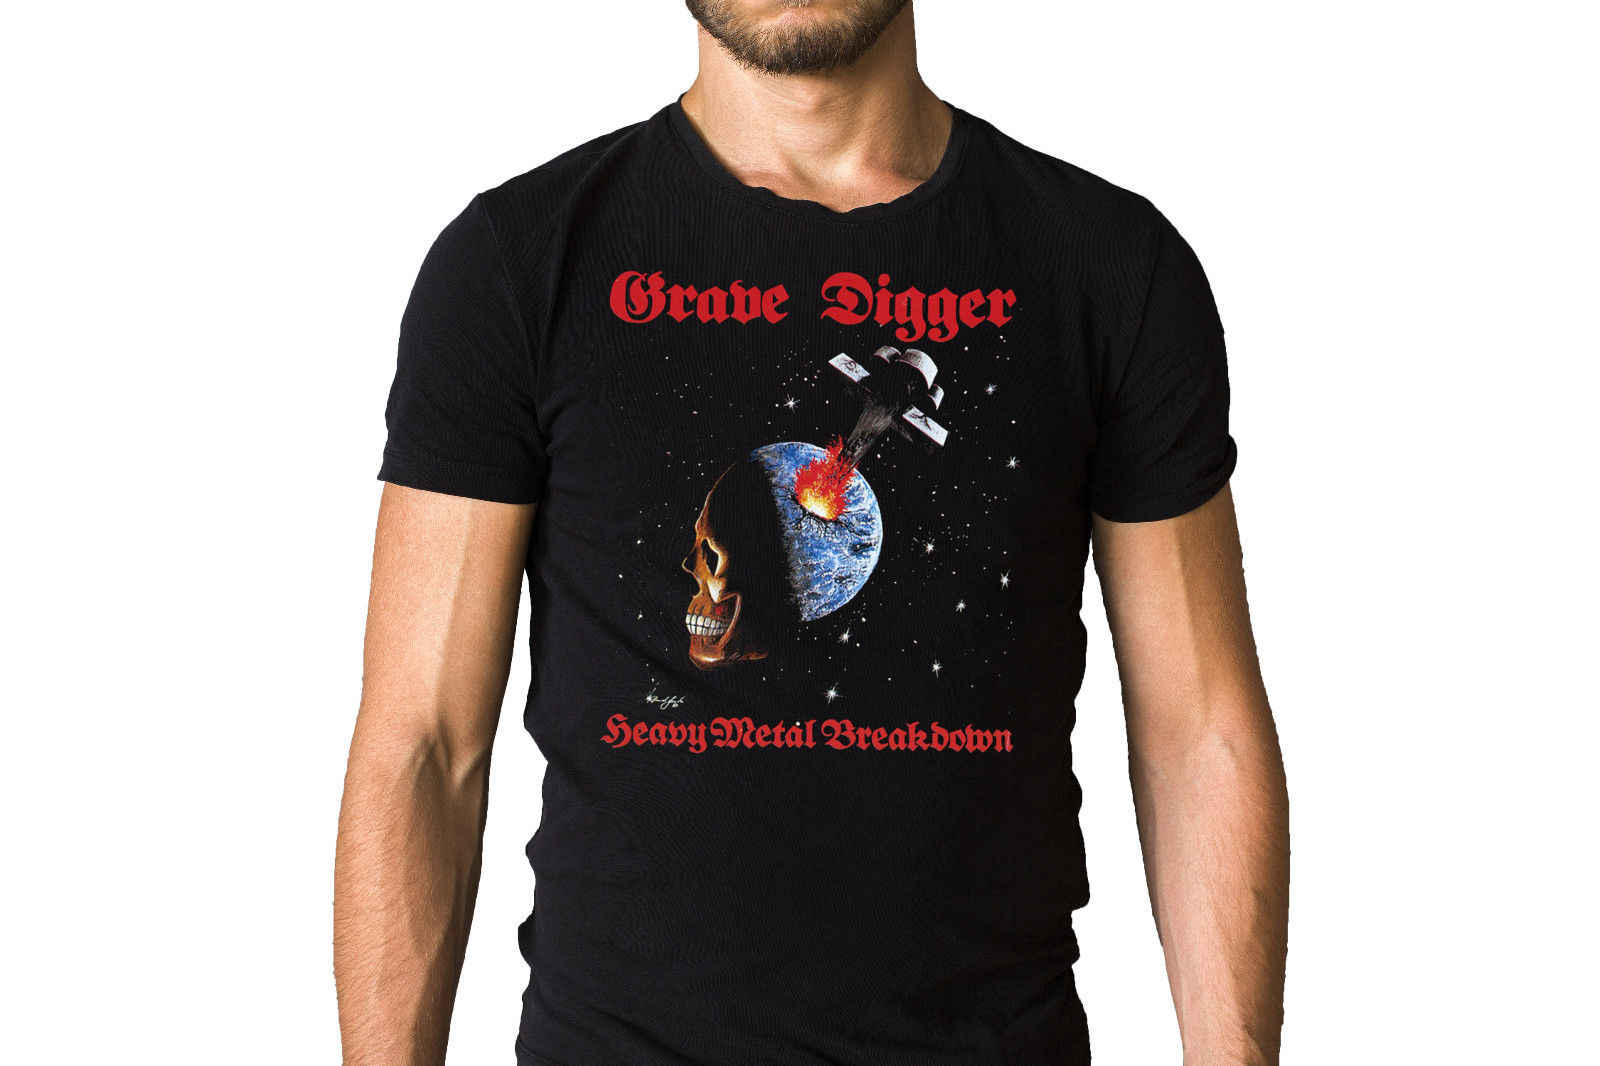 Grave Digger Heavy Metal Breakdown 1984 Album Cover T-Shirt New Arrival Male Tees Casual Boy T Shirt Tops Discounts